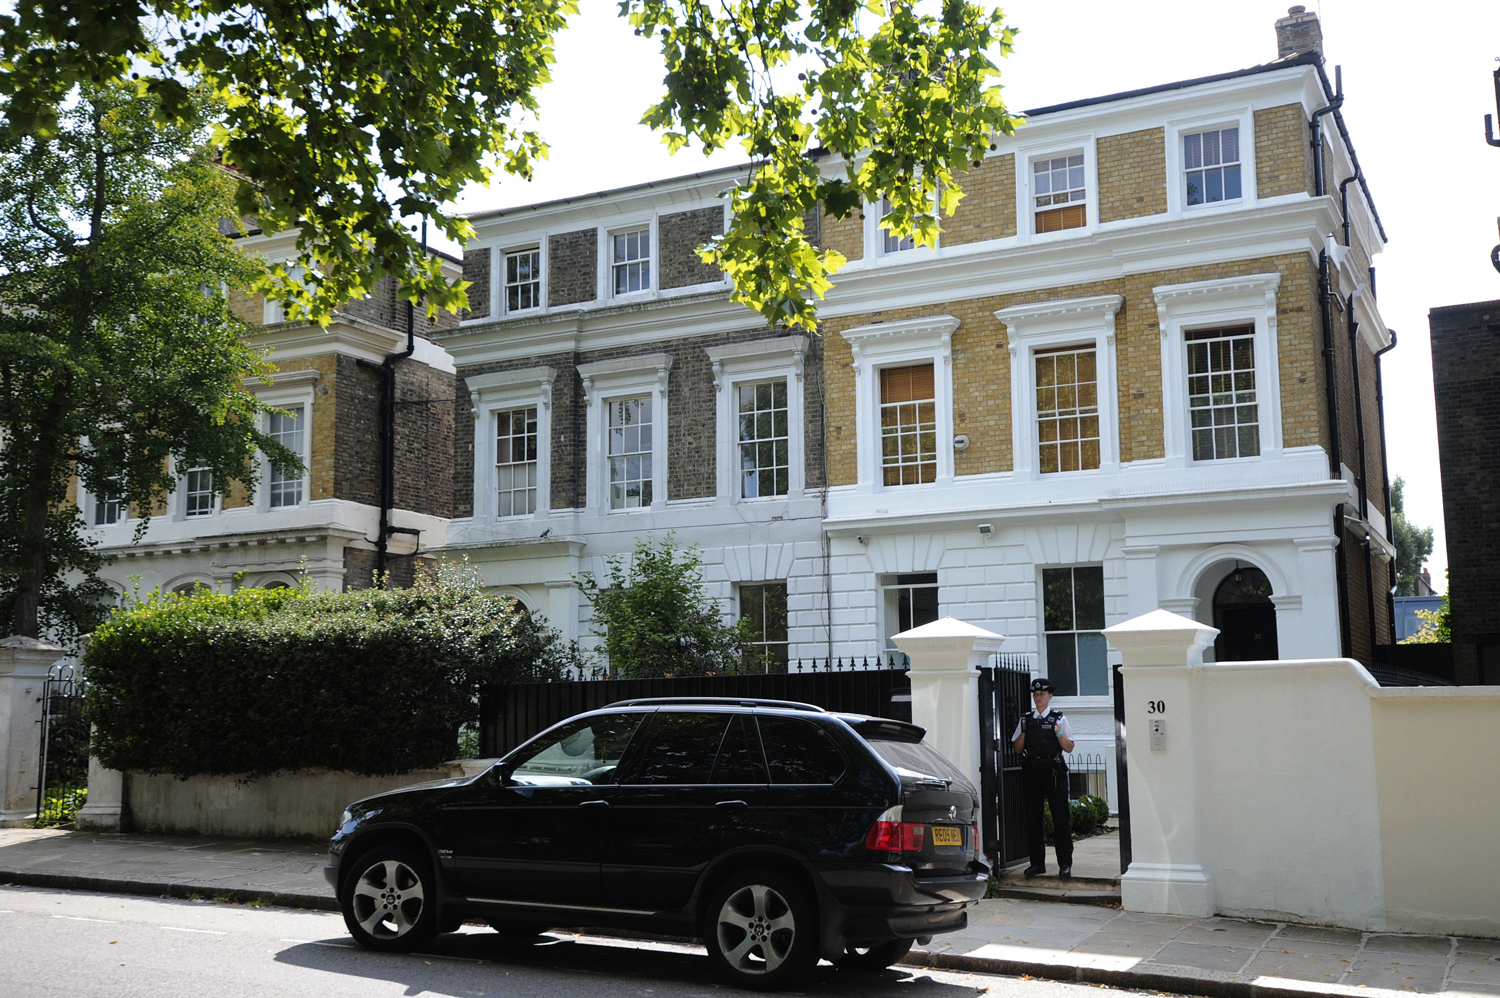 Amy Winehouse S London Home Sells For 3 2 Million